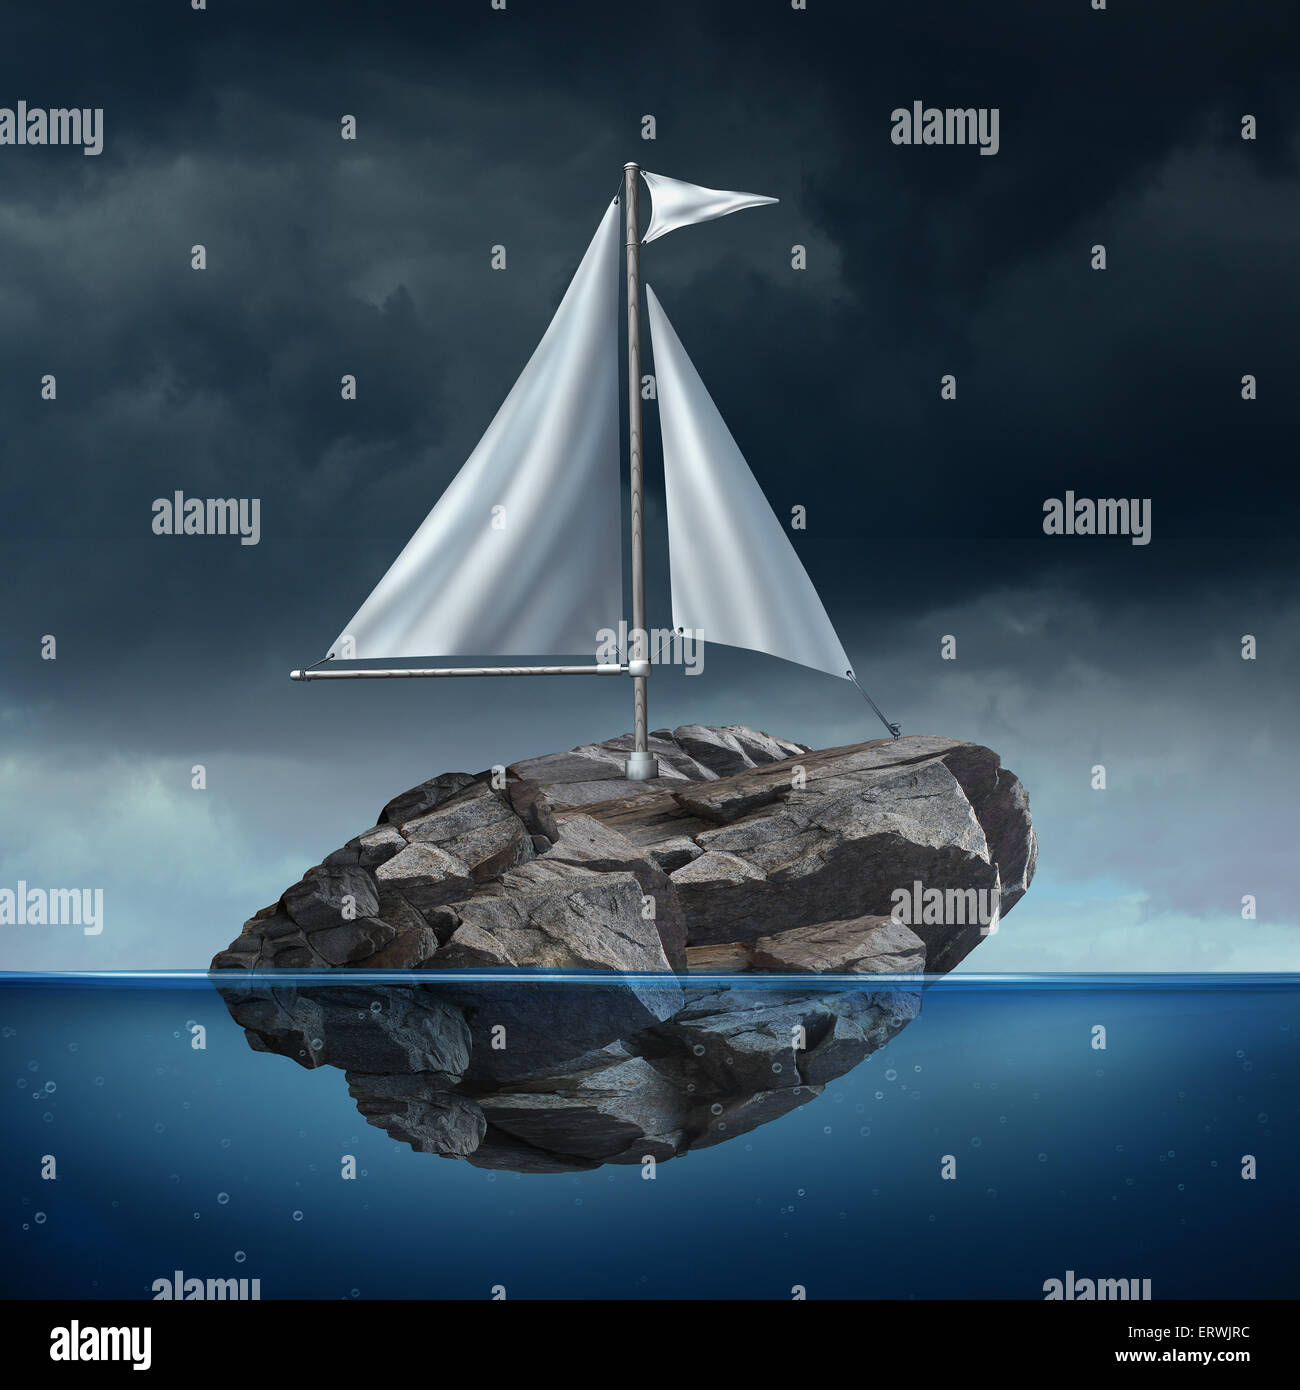 Sailing problem as a business concept with a sail on a floating heavy rock or boulder moving across the ocean as - Stock Image